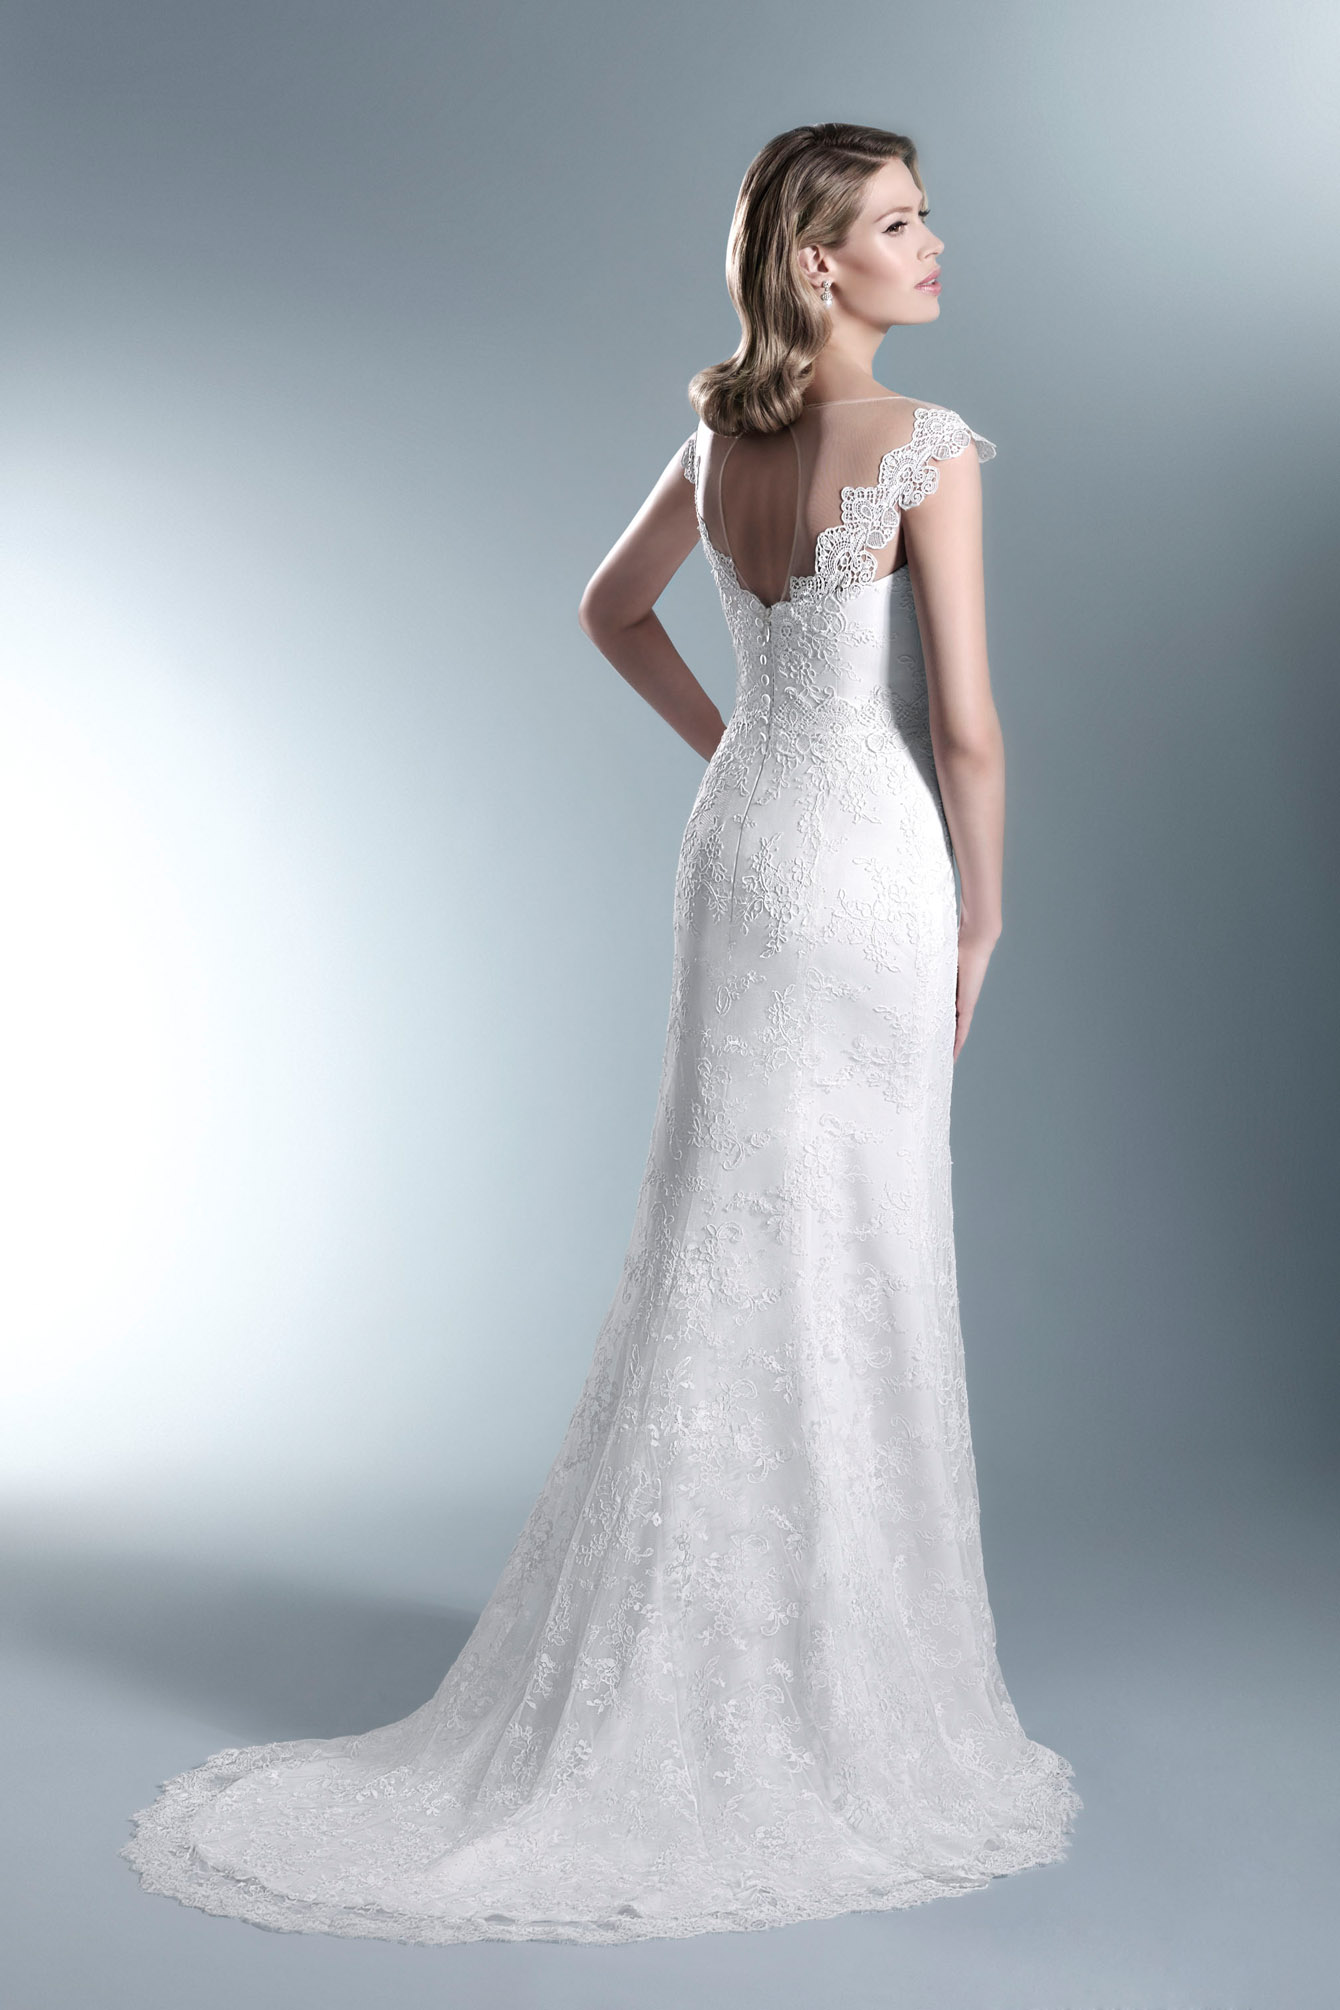 Fancy Wedding Pant Outfits Adornment - All Wedding Dresses ...